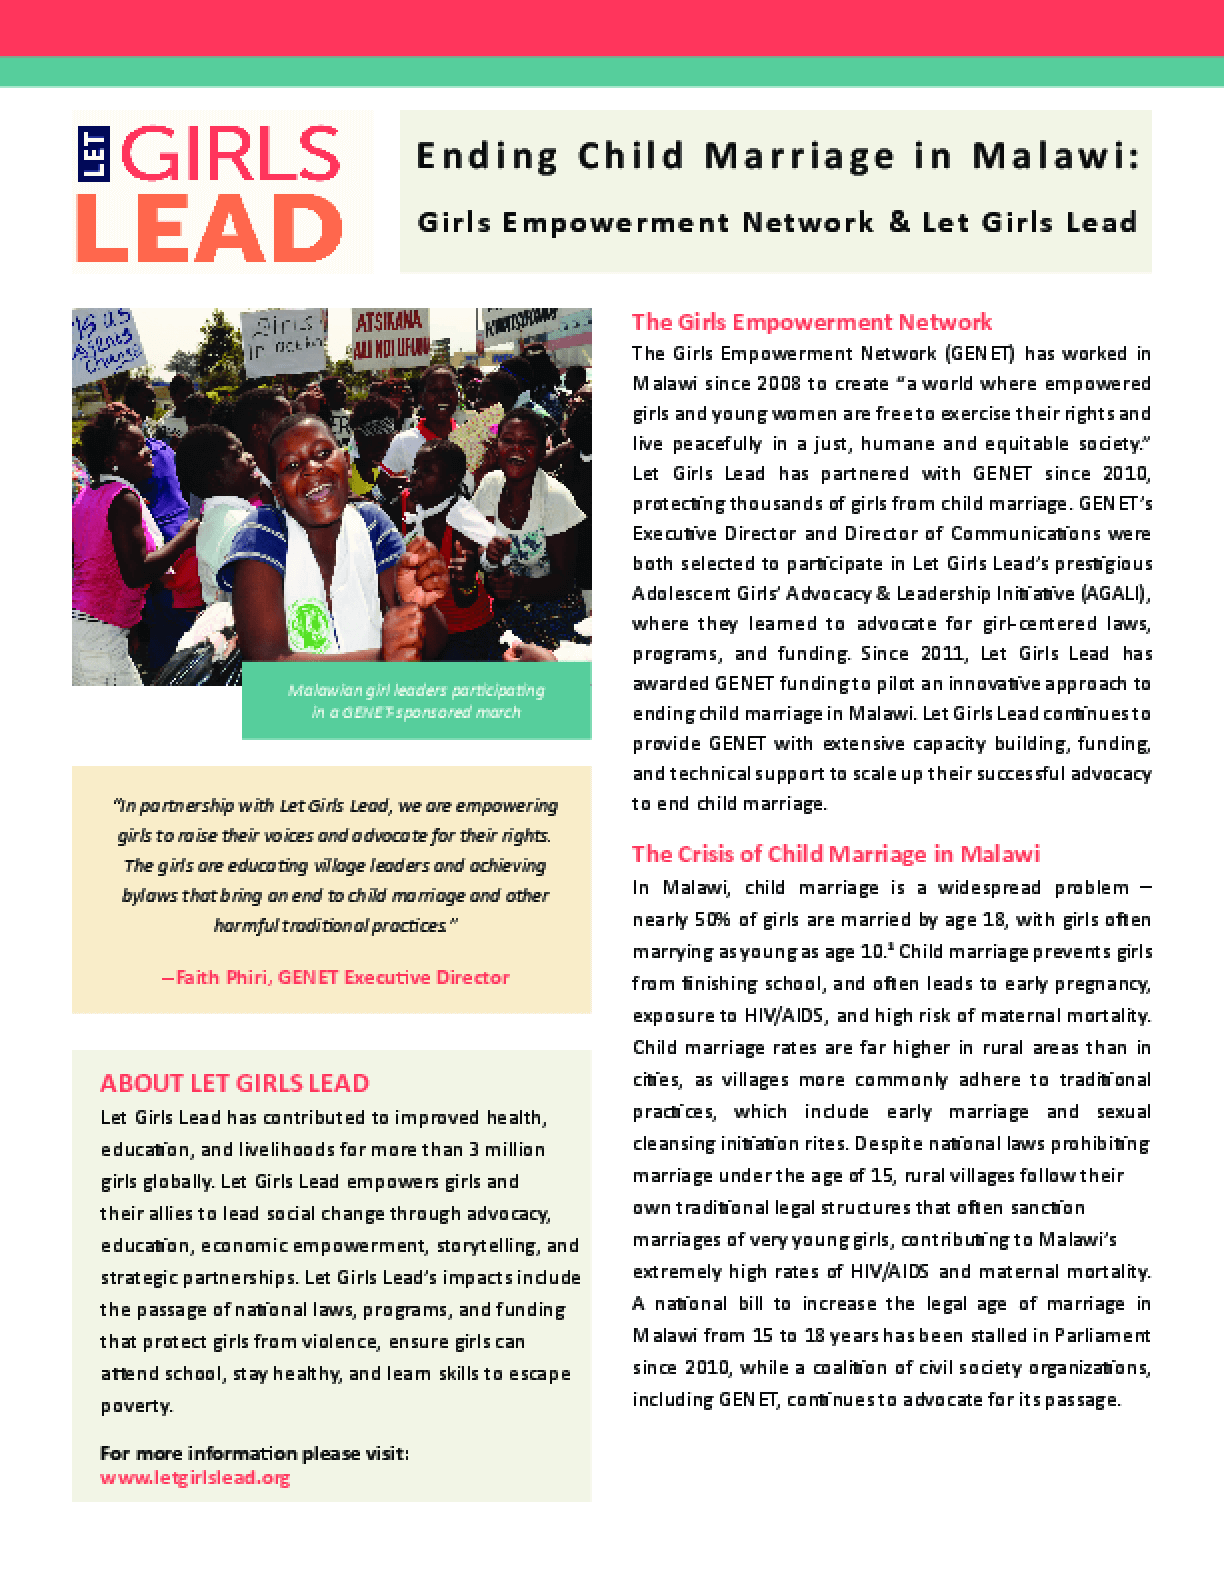 Ending Child Marriage in Malawi: Malawian Girl Leaders Participating